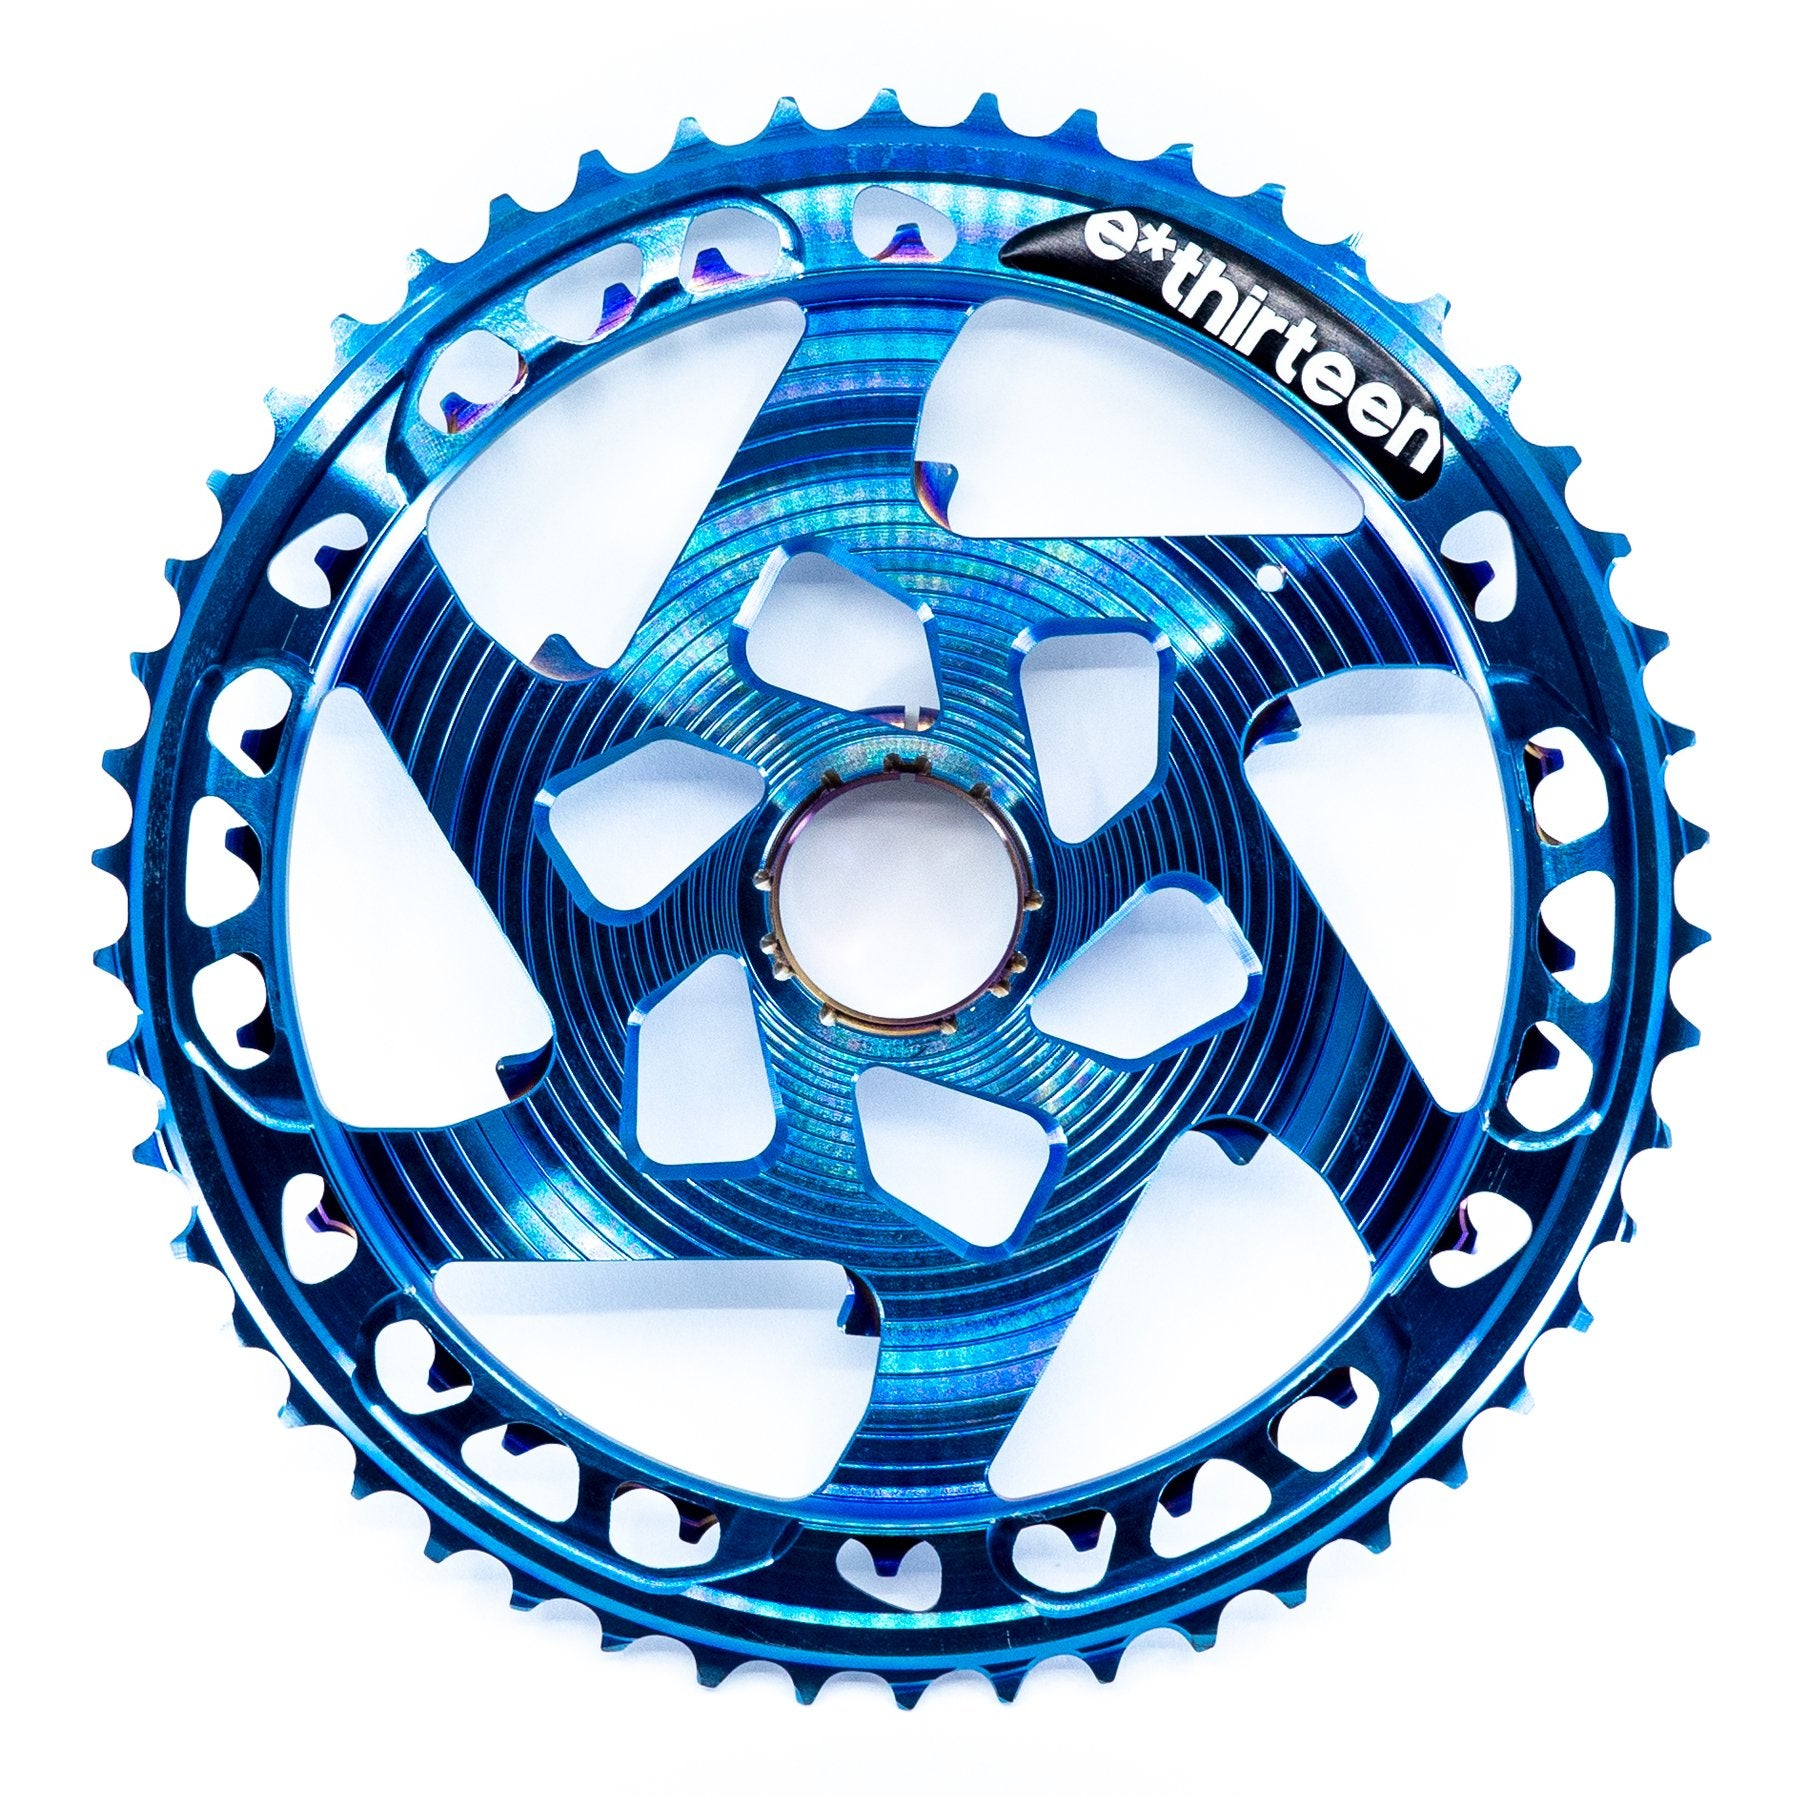 Helix R 11-Speed Cassette Replacement Clusters